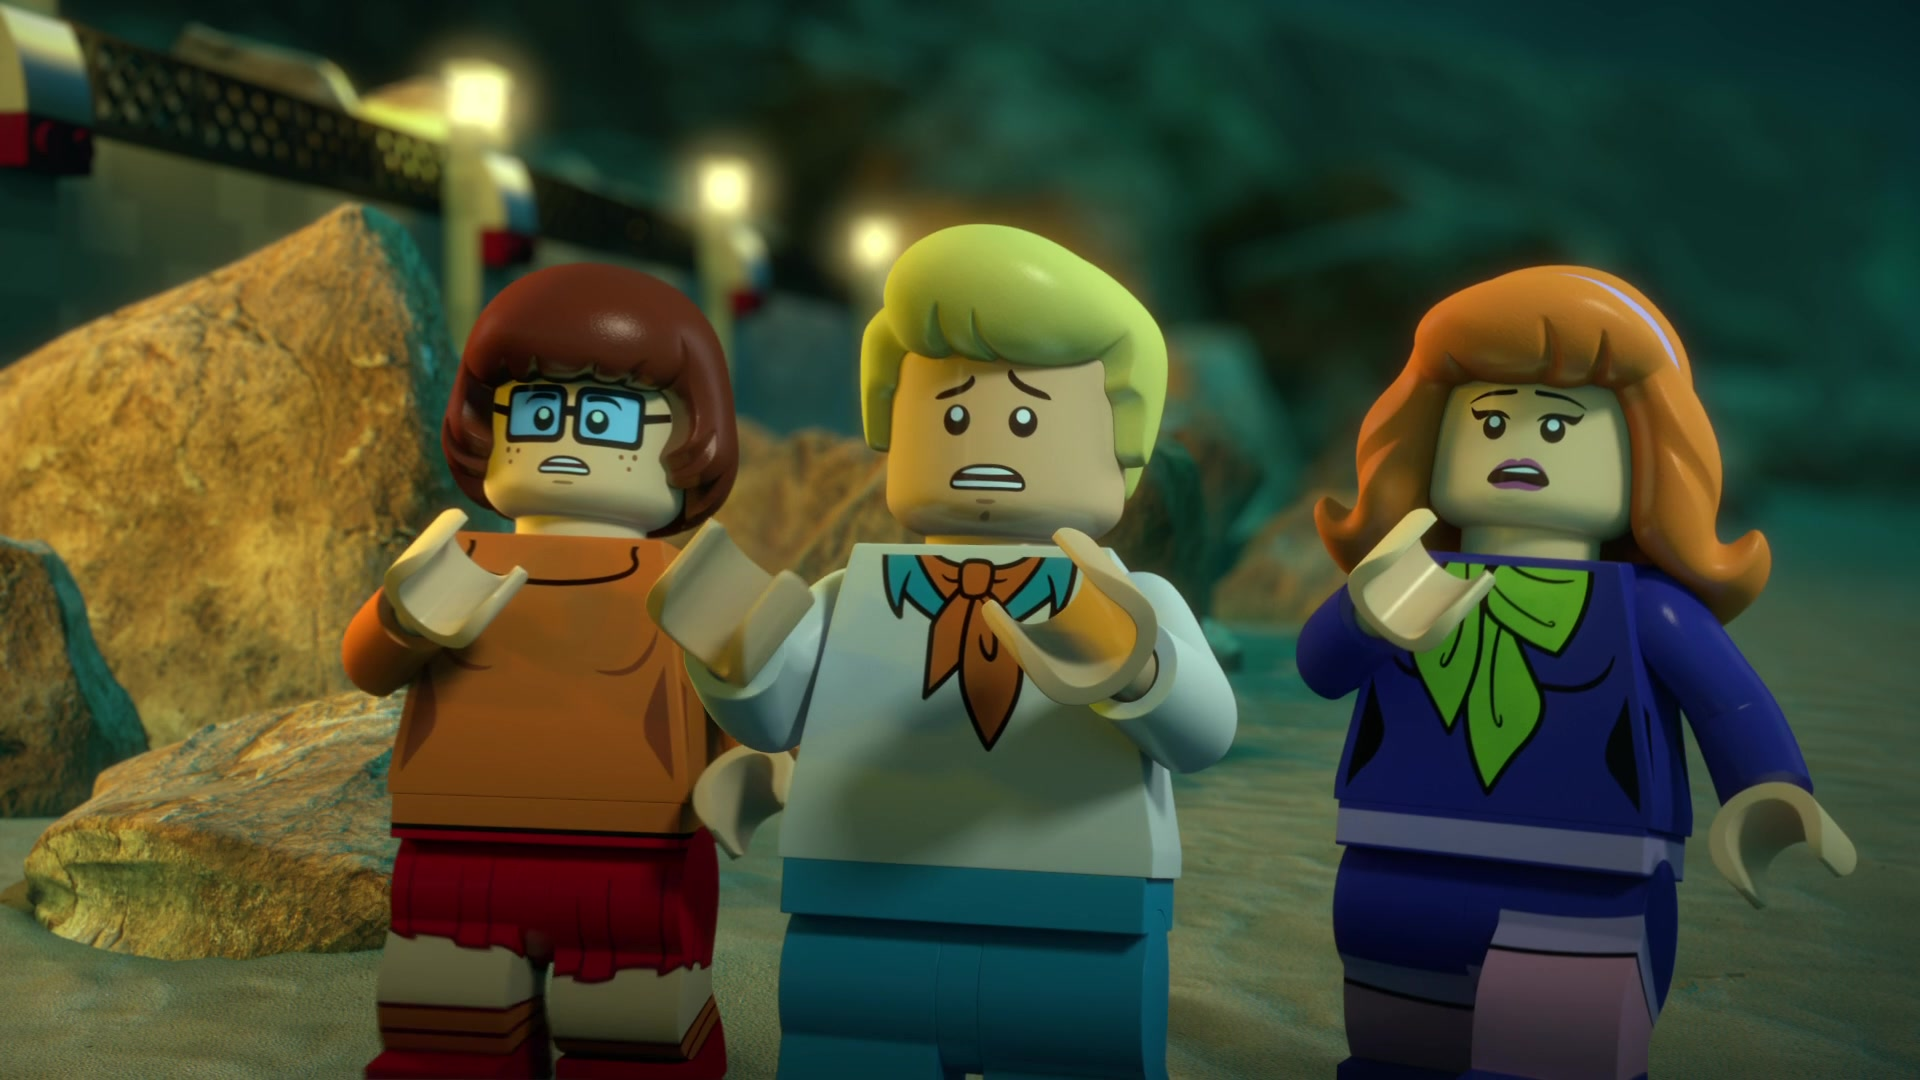 Fred Jones(Lego)